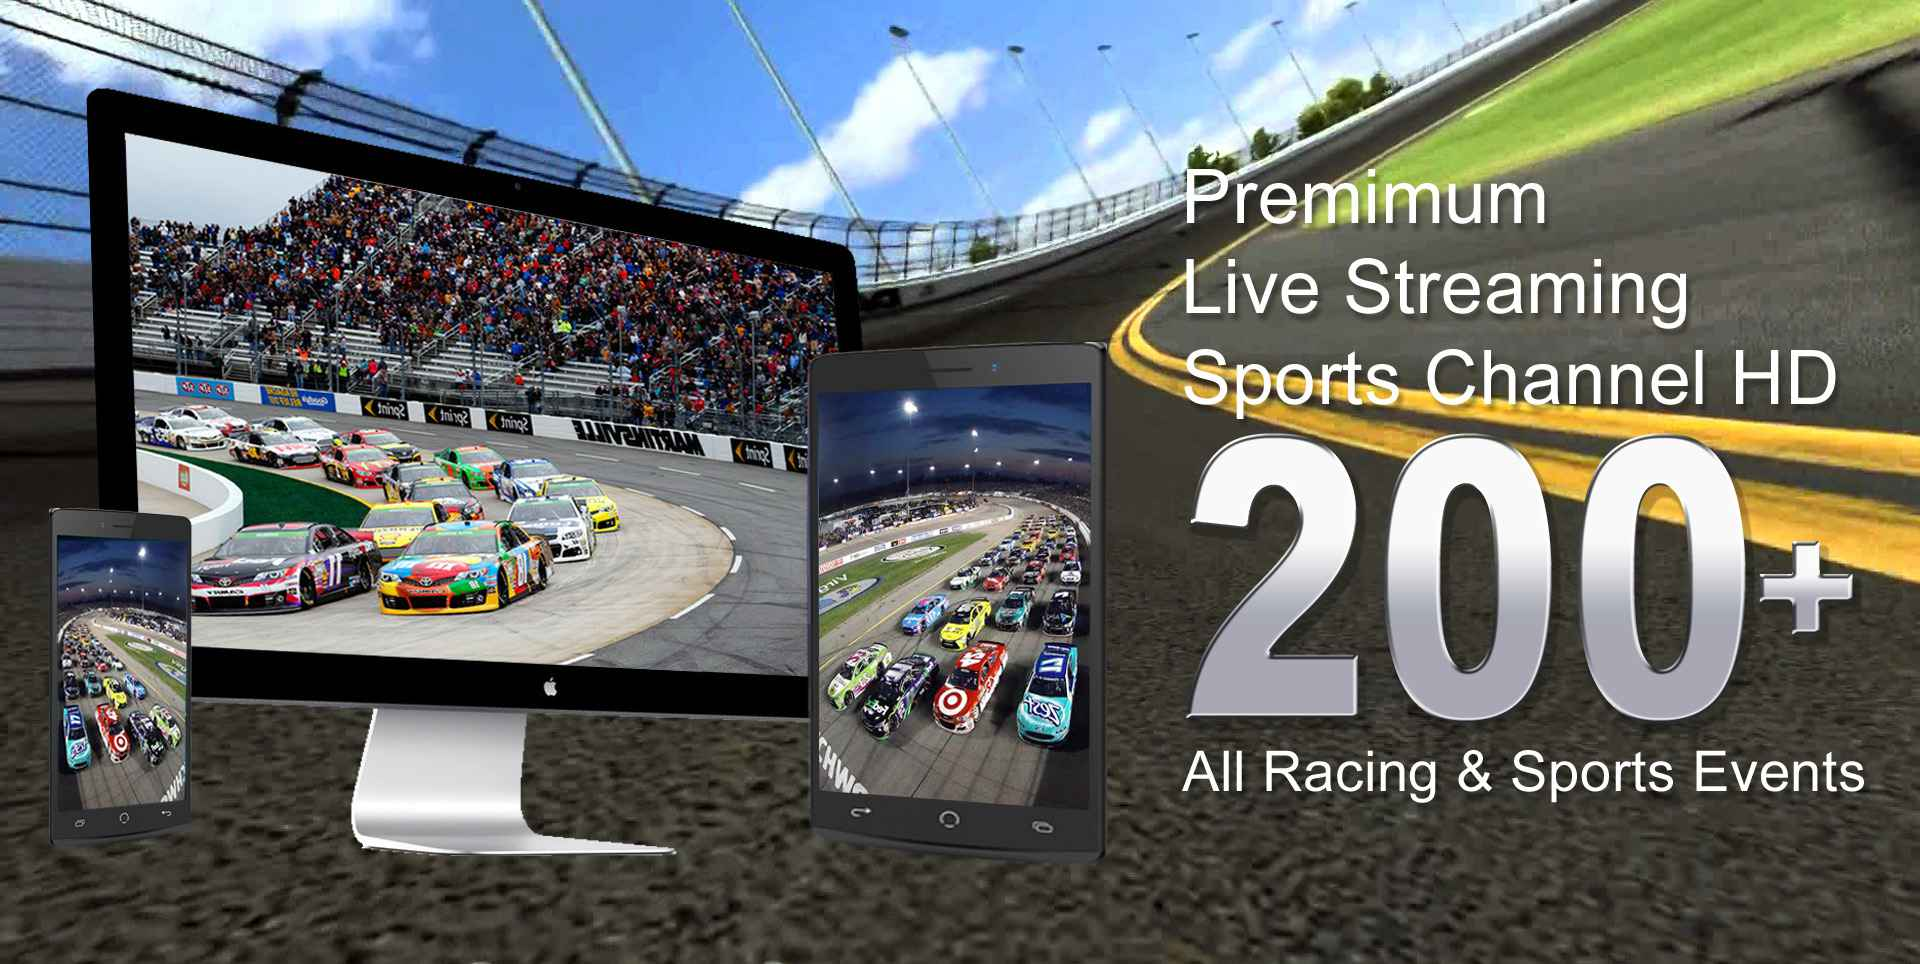 2016 Alabama 500 Sprint Cup Live